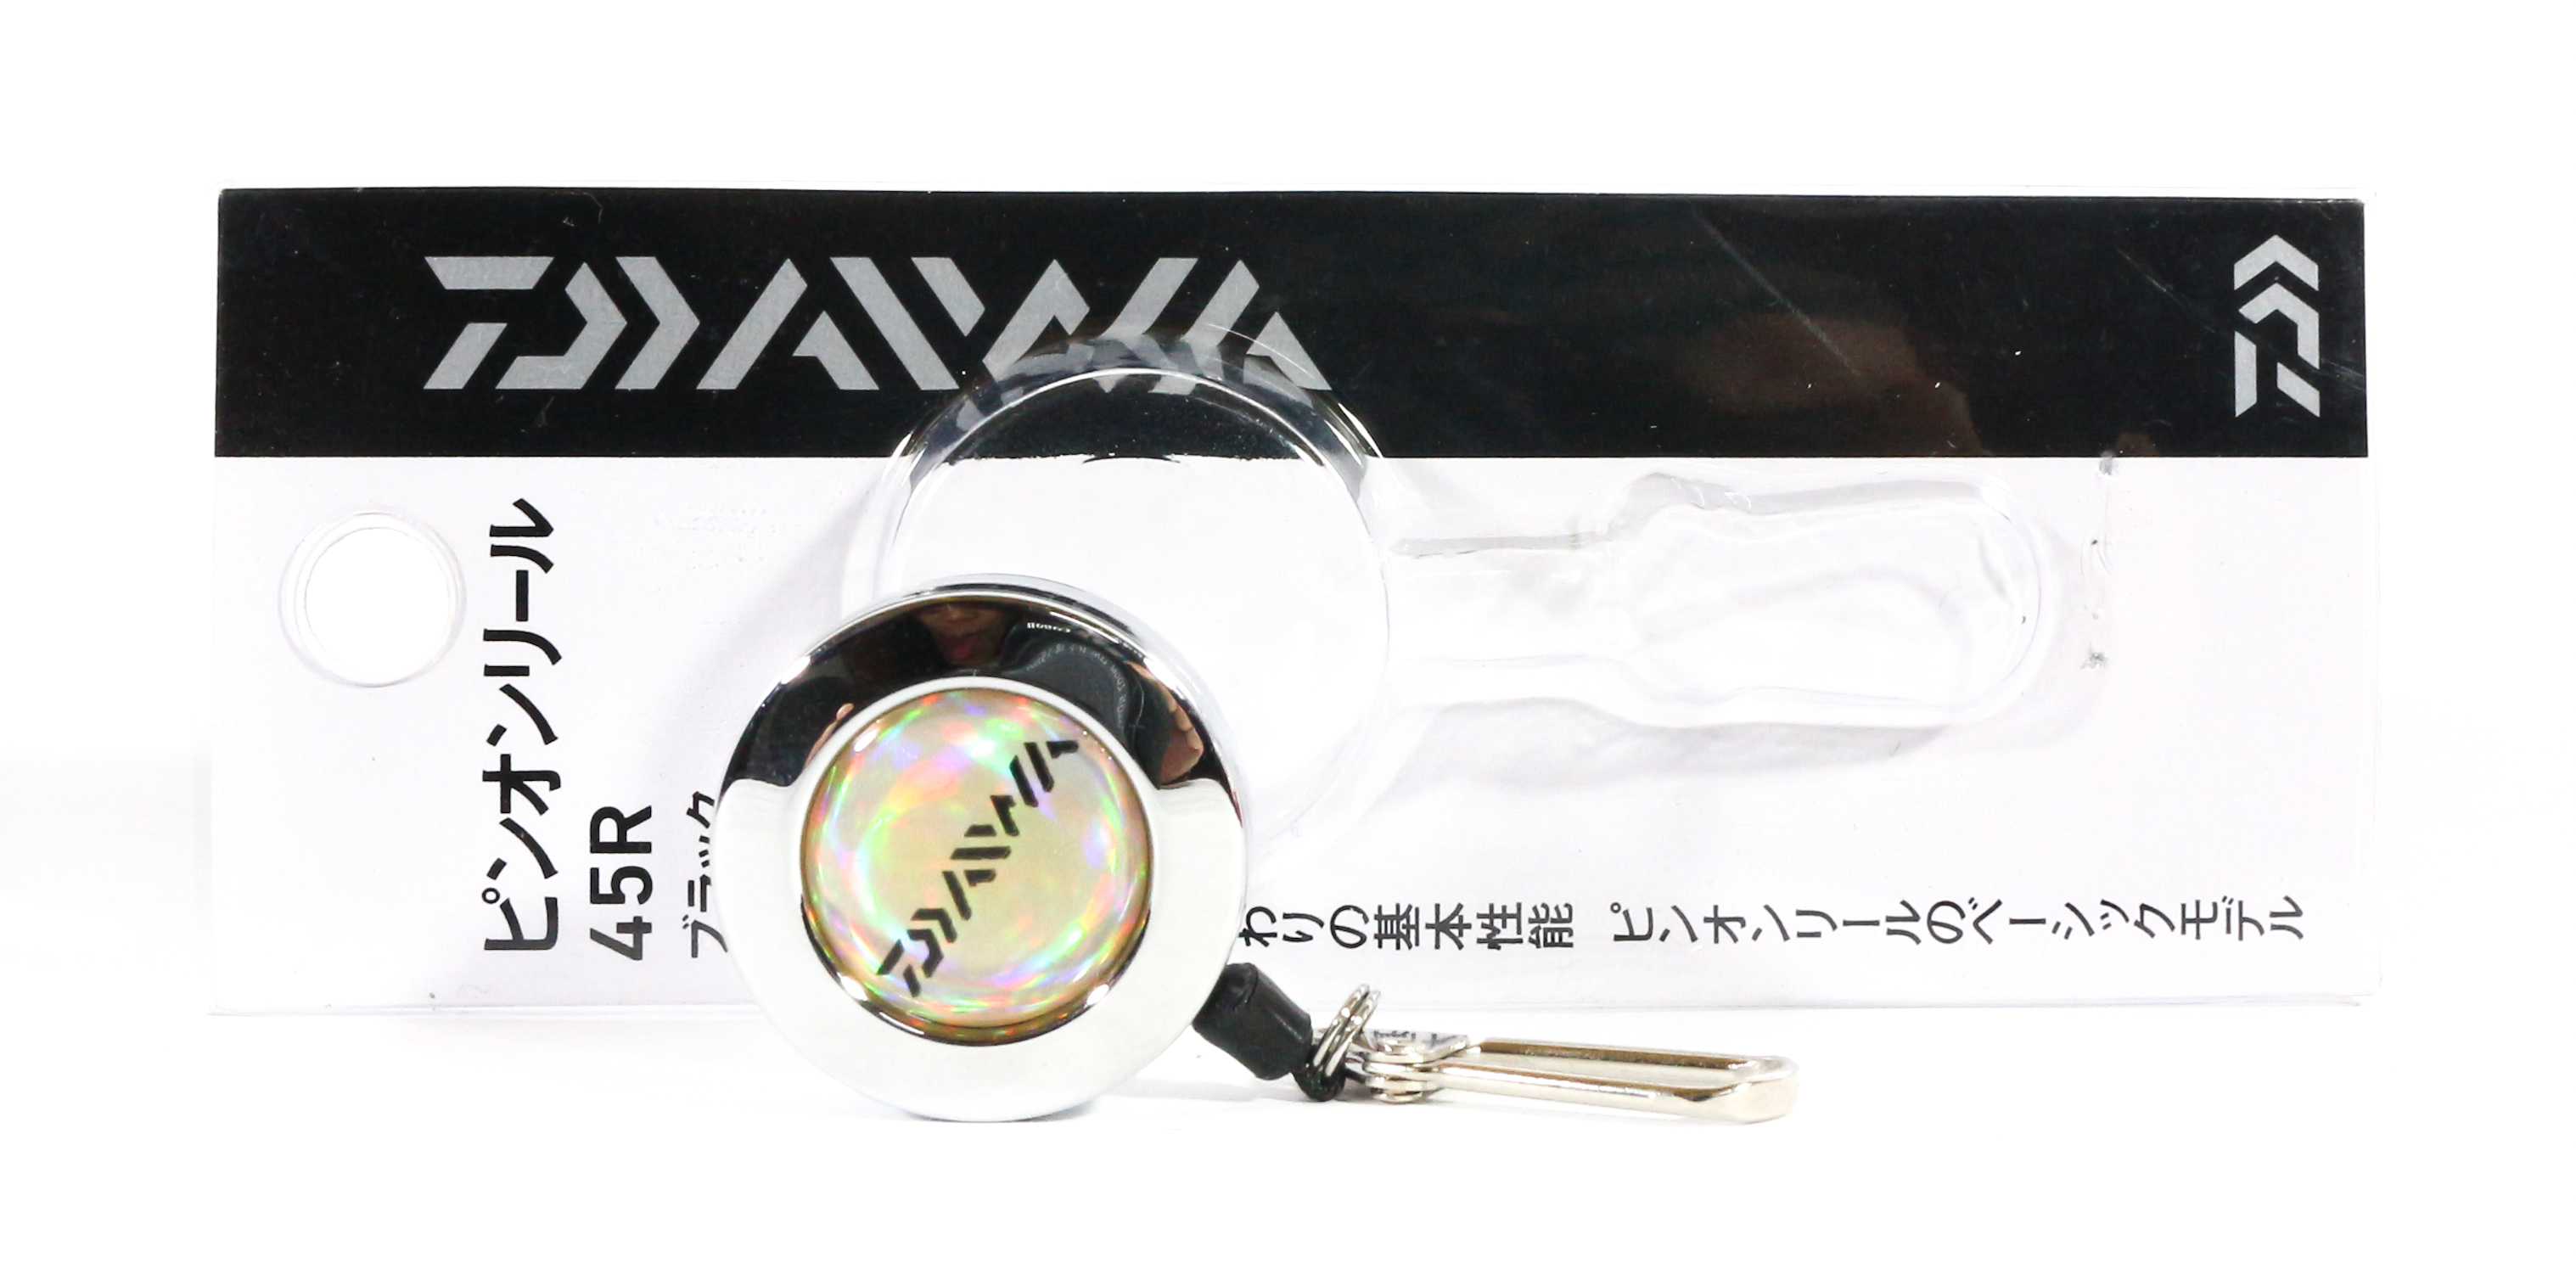 Sale Daiwa 45 R Pin On Reel Silver (0532)